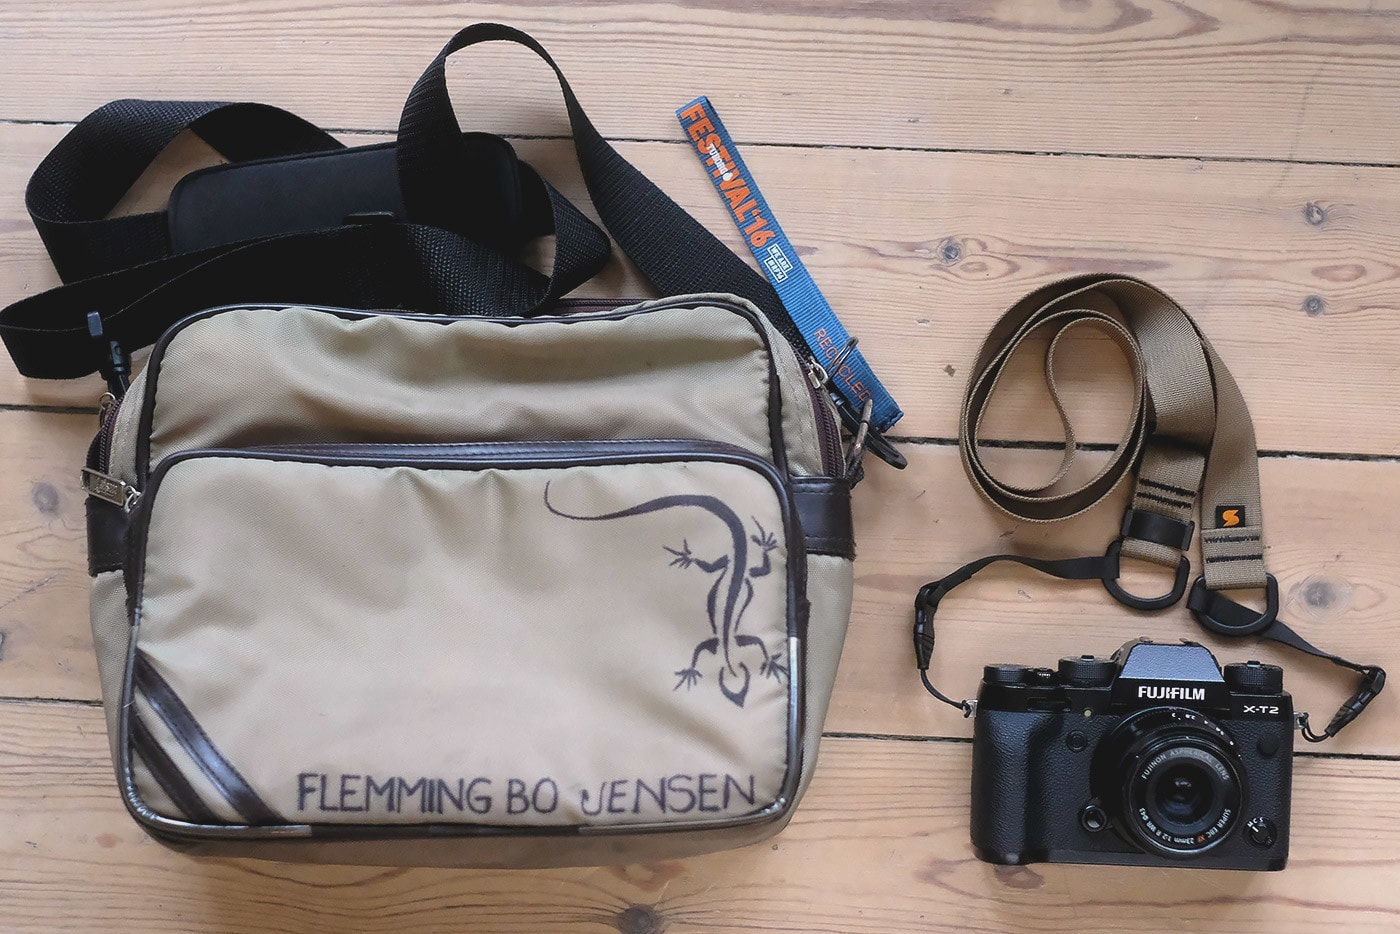 Flemming Bo Jensen's Bag and Fuji X-T2 with Simplr Mirrorless Camera Strap